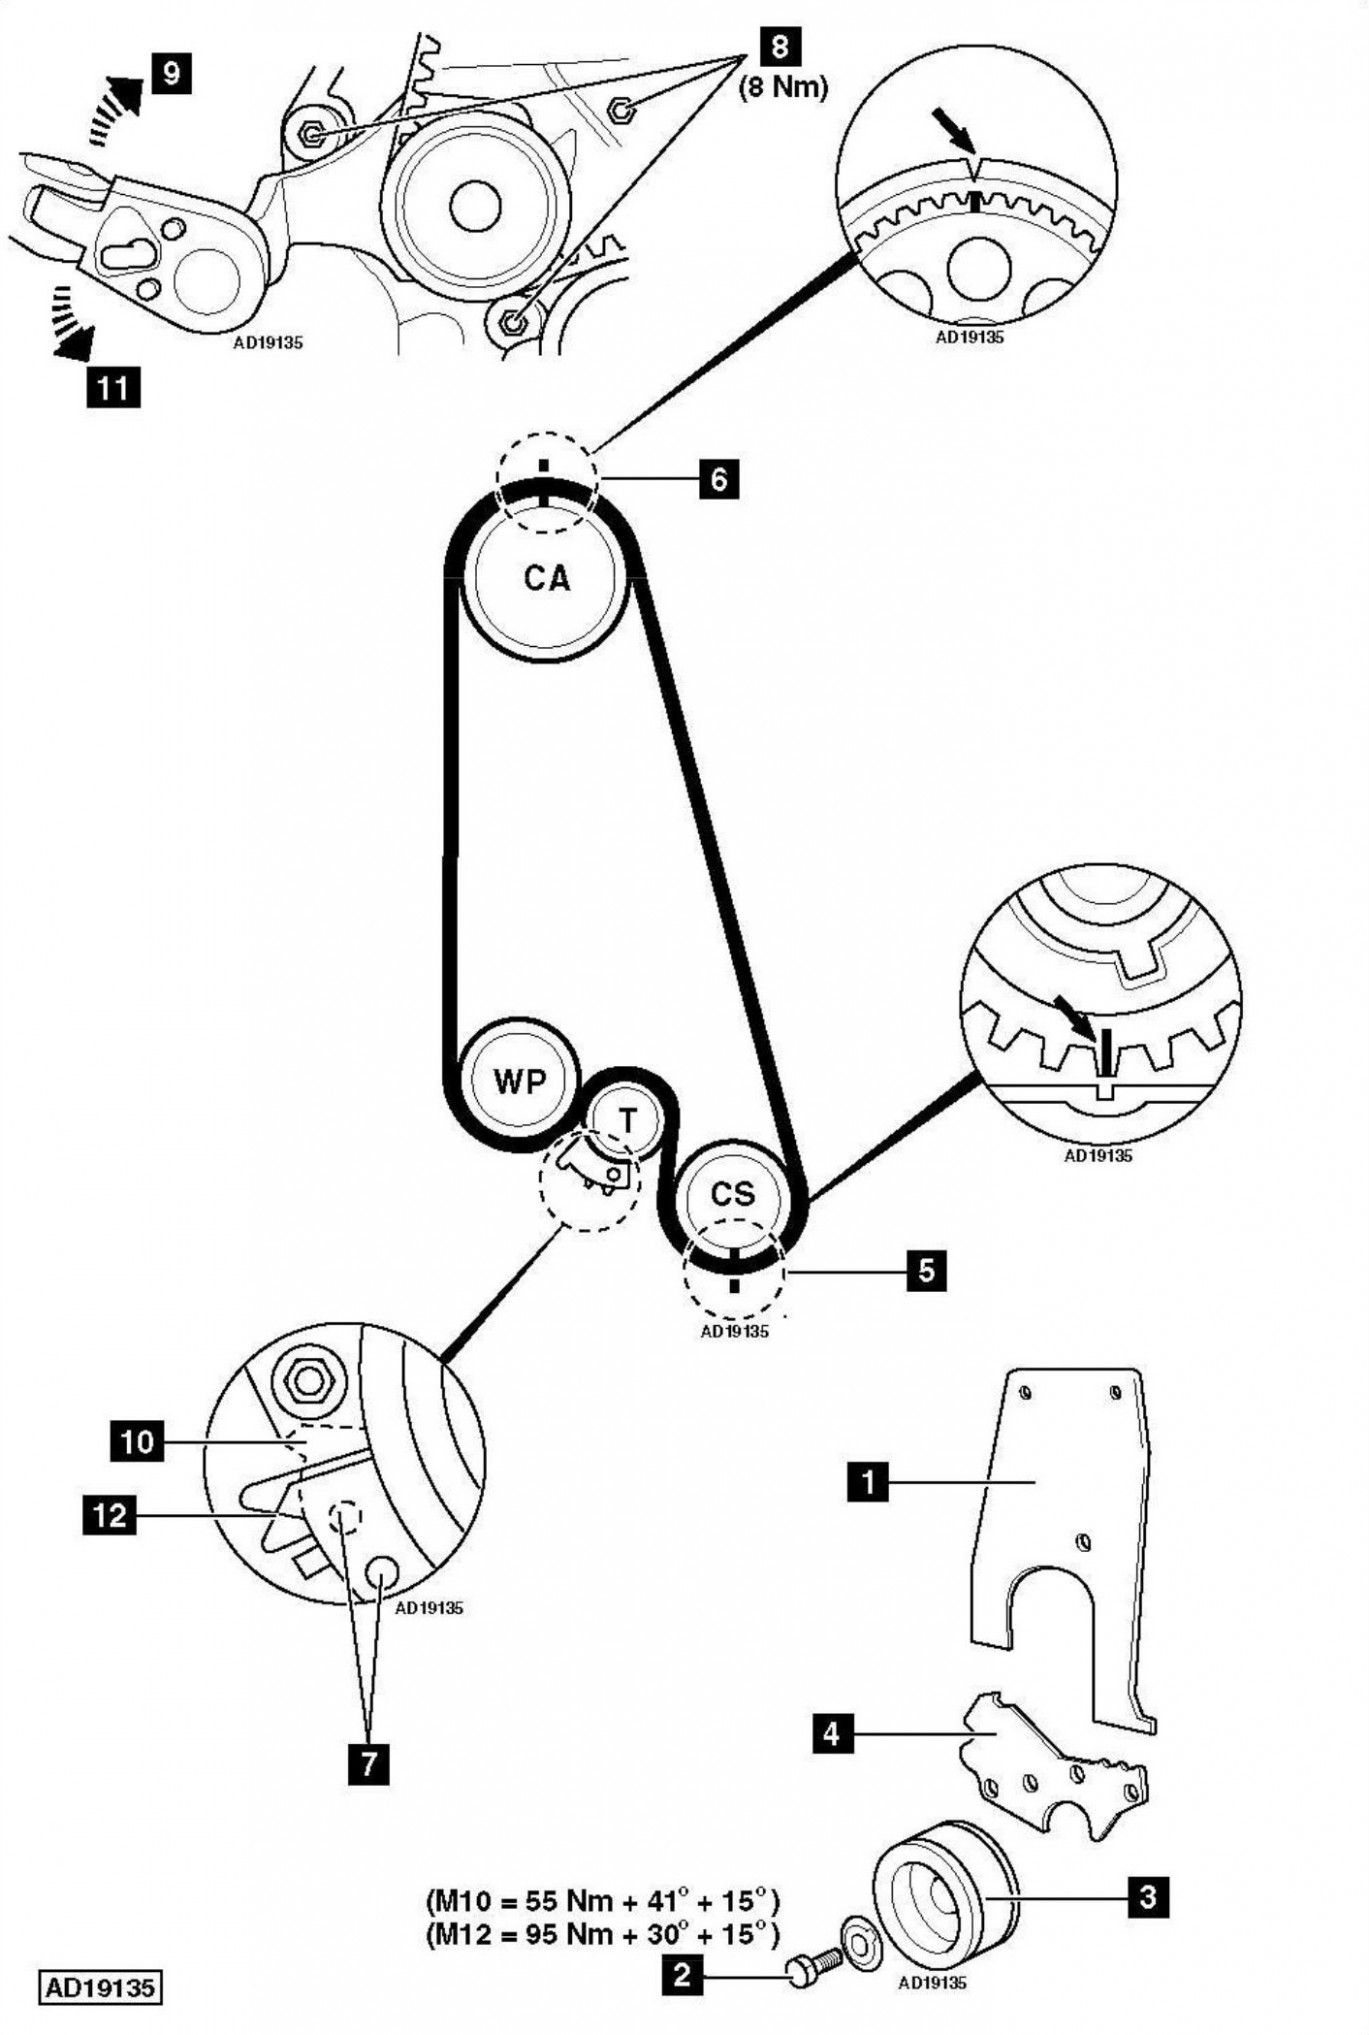 Opel Corsa 5.5 Dti Engine Diagram Batang di 2020